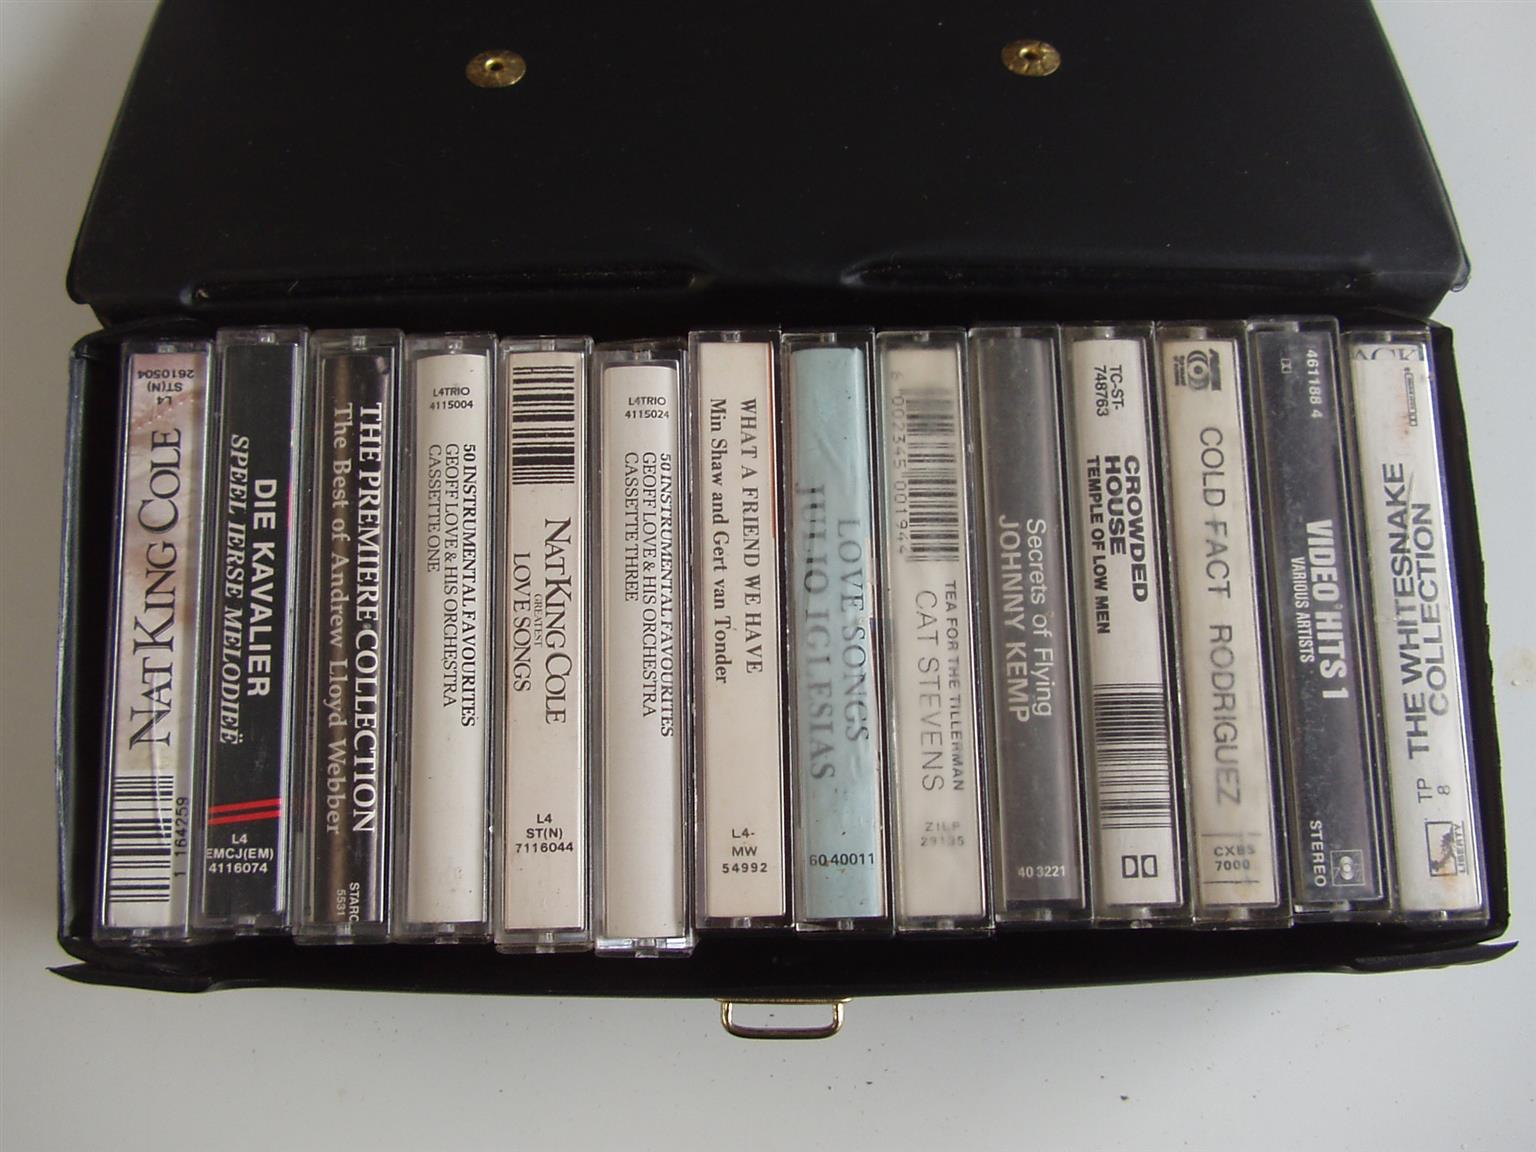 Music Cassettes - 14 cassettes in case